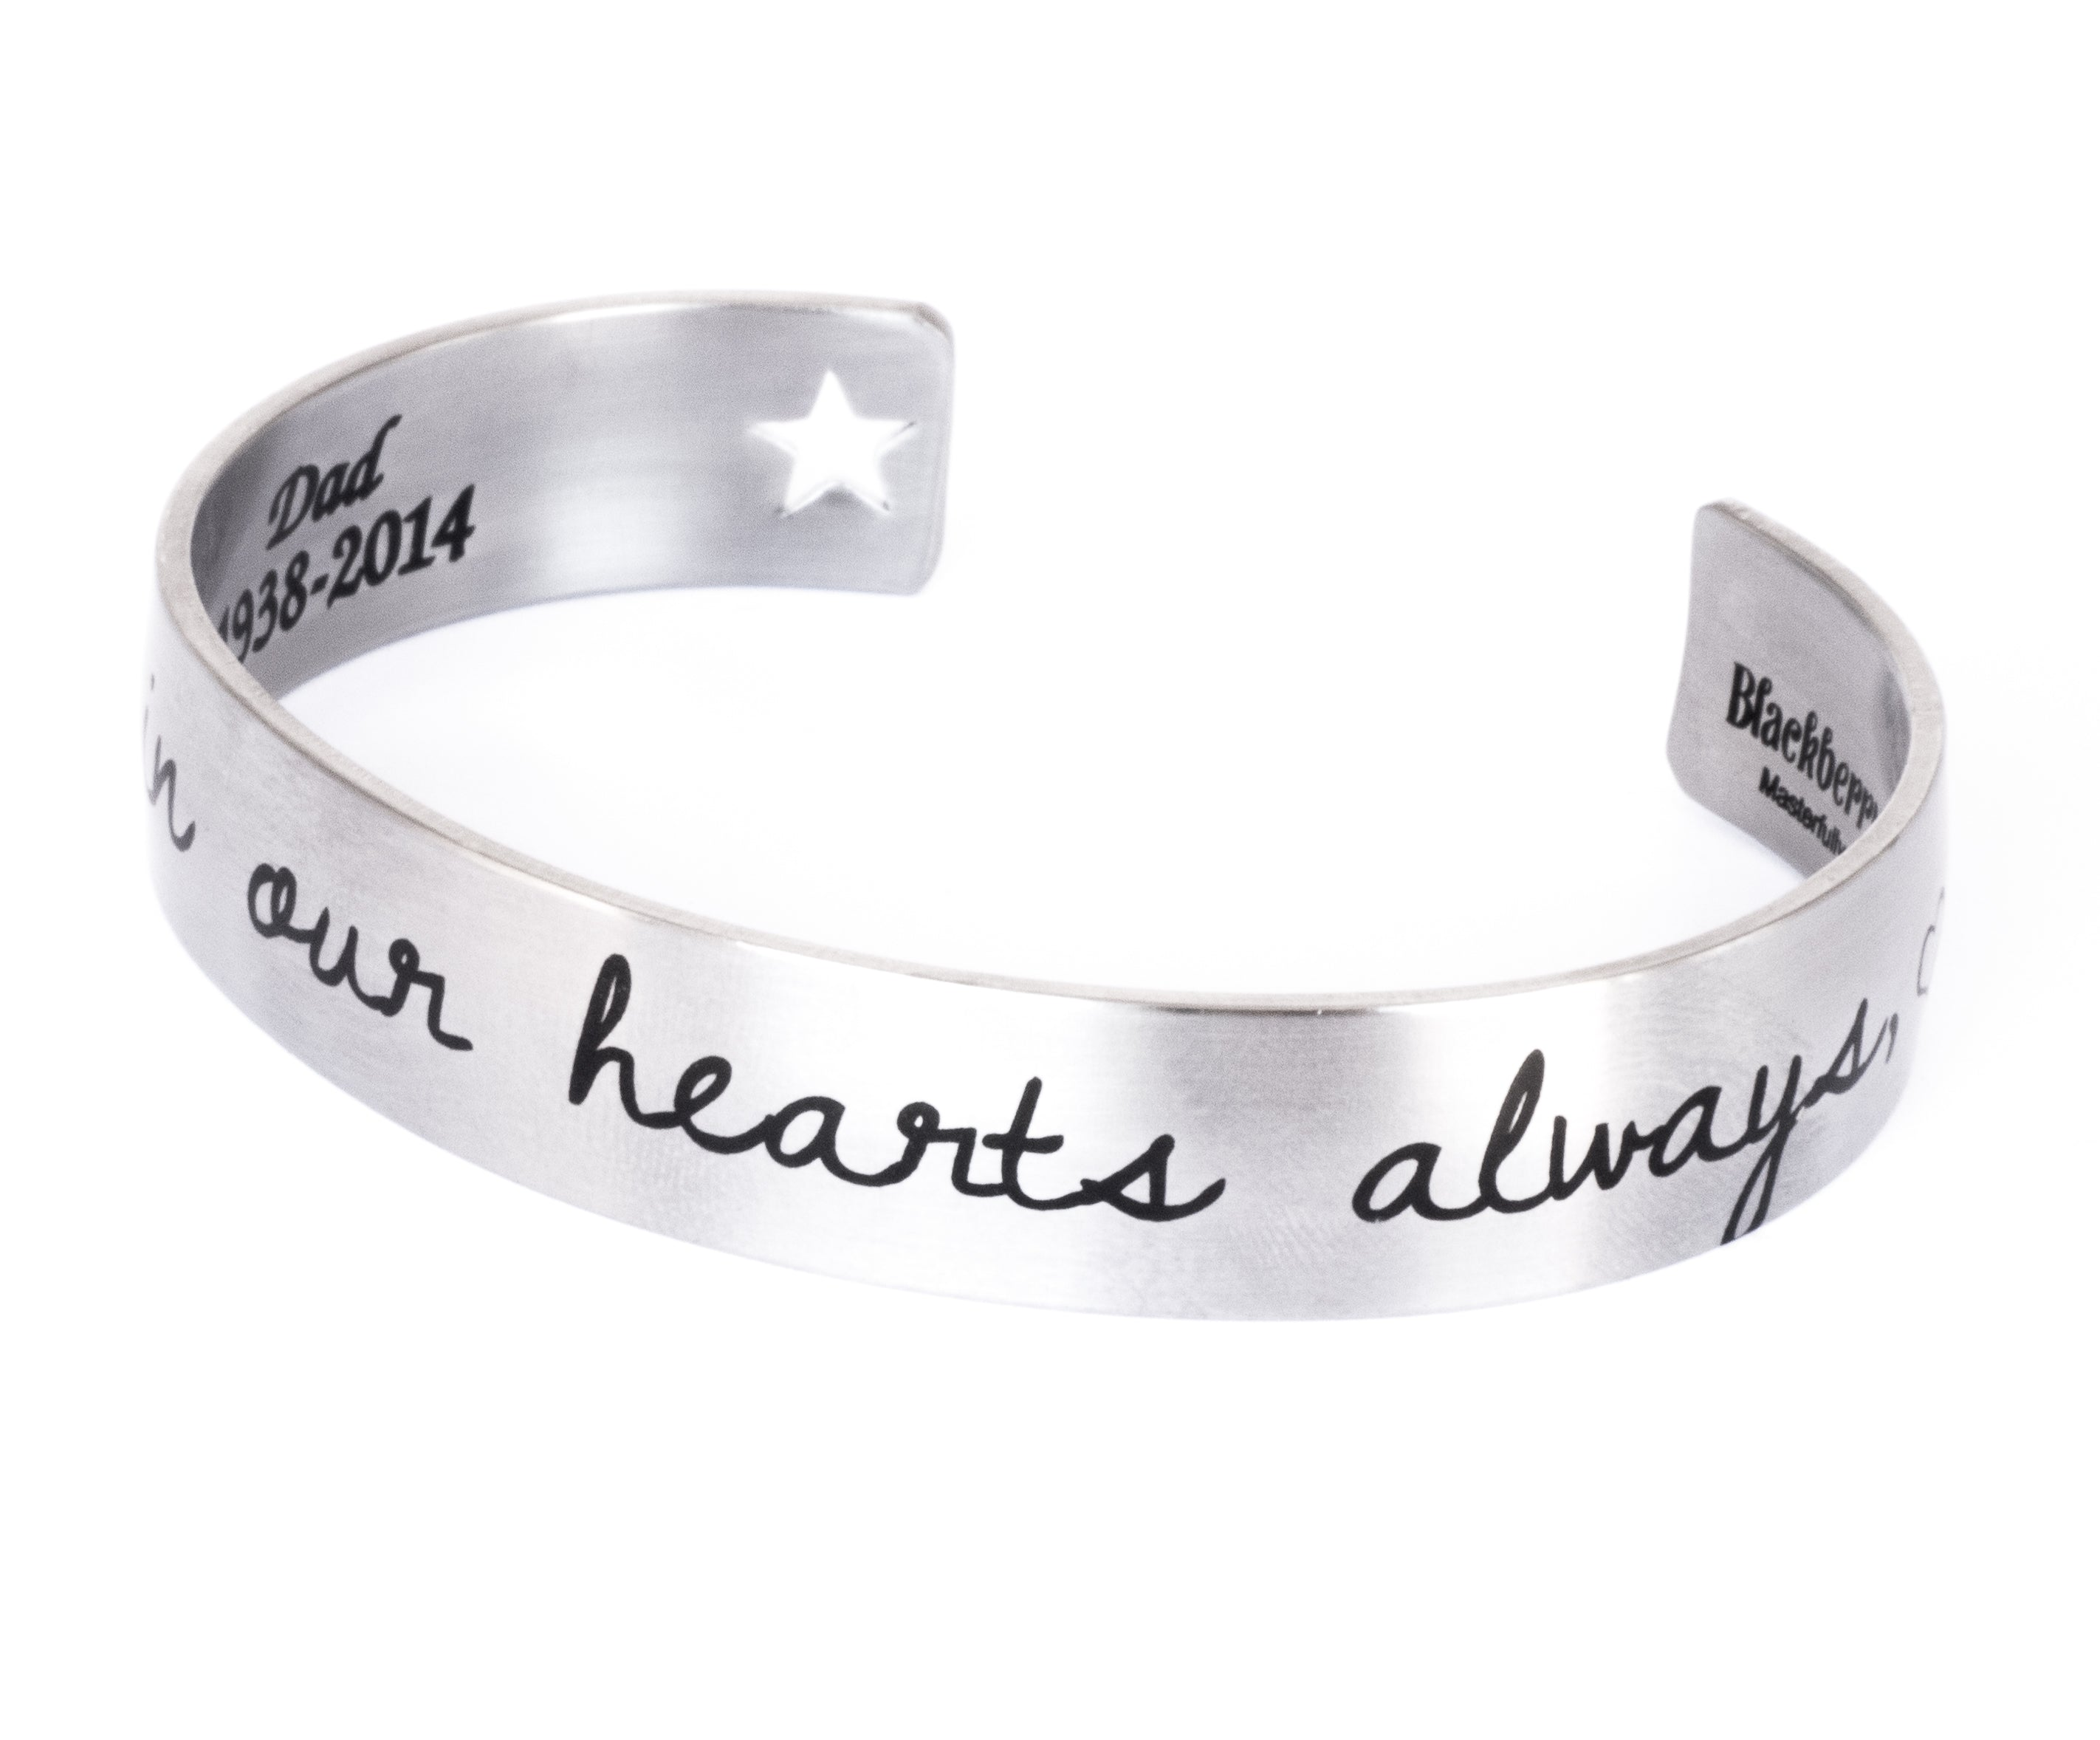 e4af3741dbc1b Memorial Cuff Bracelet with actual Handwriting -